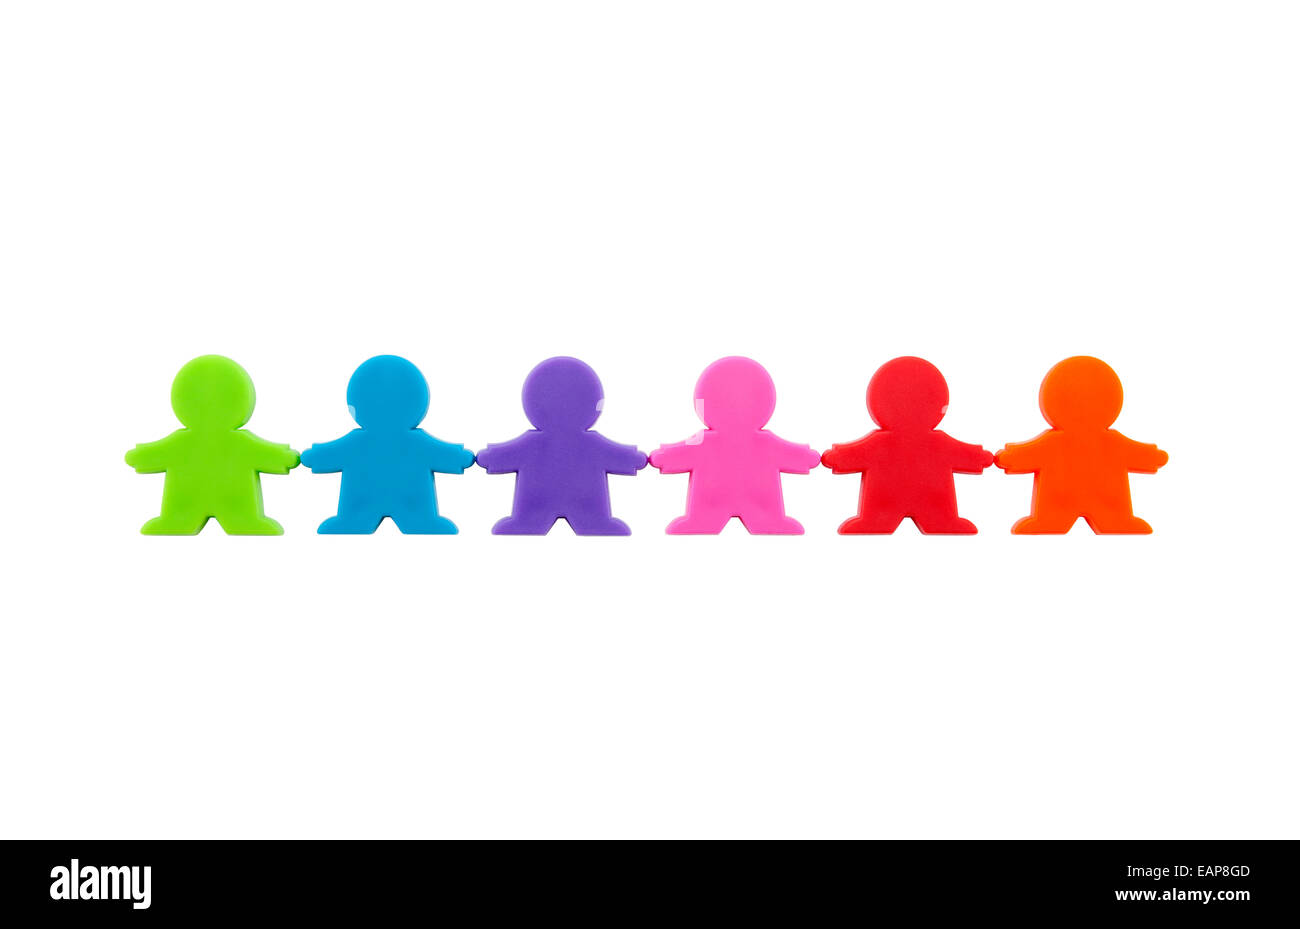 Colorful people figures standing in a row with clipping path. - Stock Image